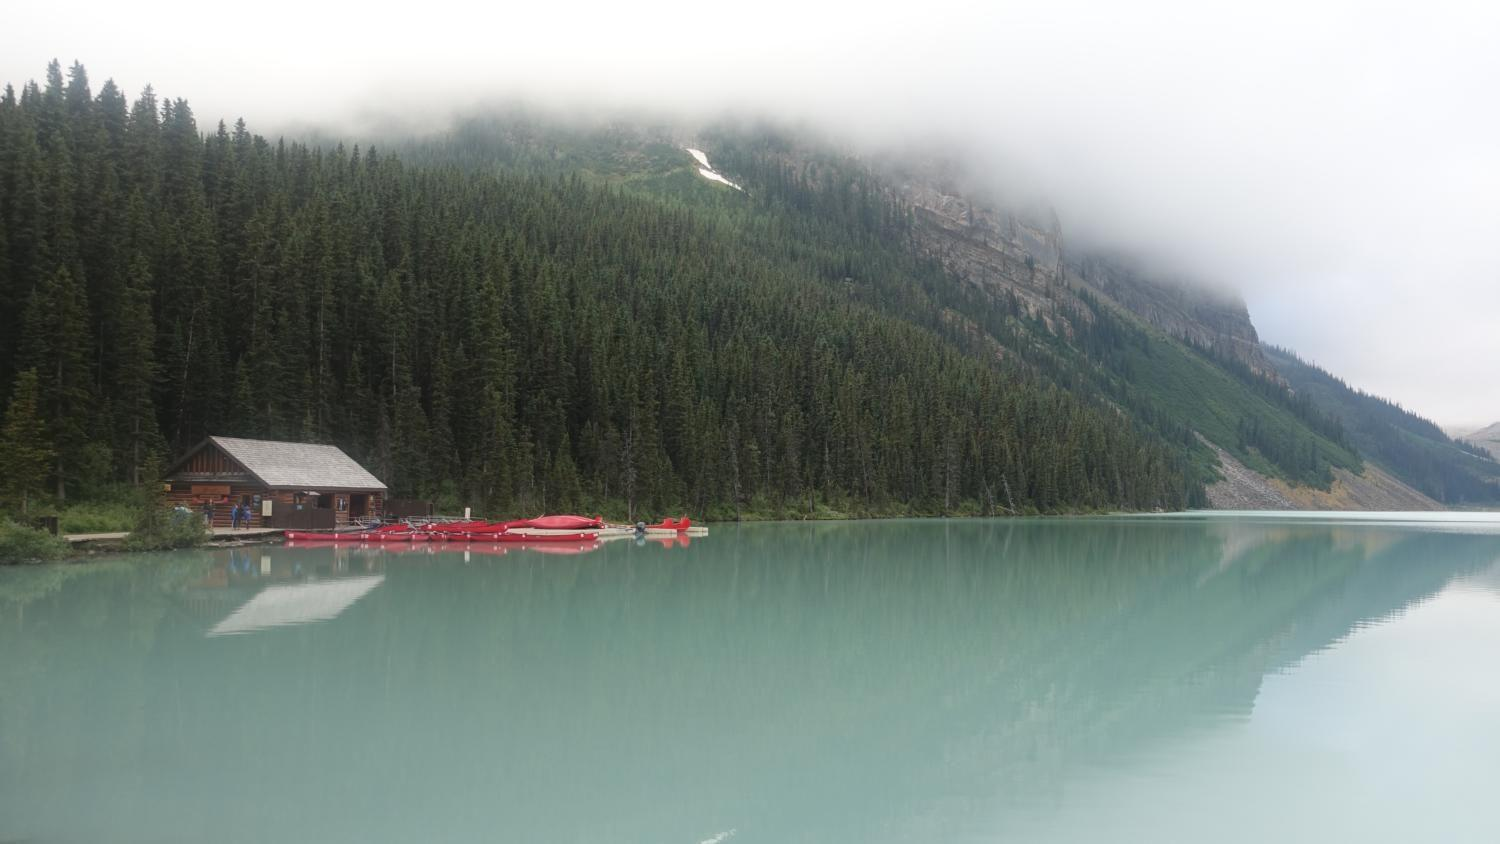 Lake Louise is located in Alberta, Canada and is fed by the glaciers that overlook the lake. While traveling also provides a vacation from the routines of daily life, it also serves as a means to become more globally aware and knowledgeable.